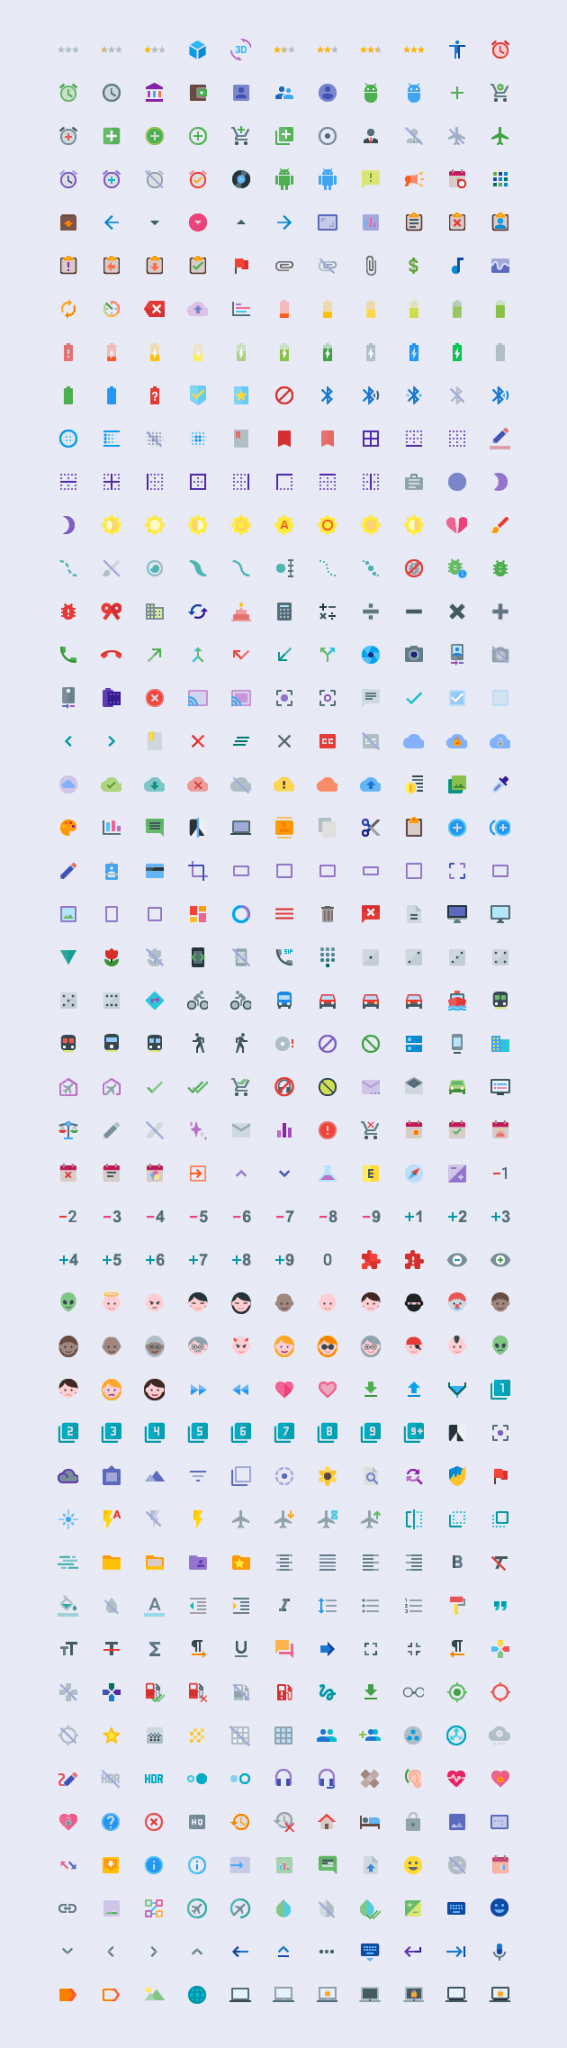 material_color_icon_set_png_24_1